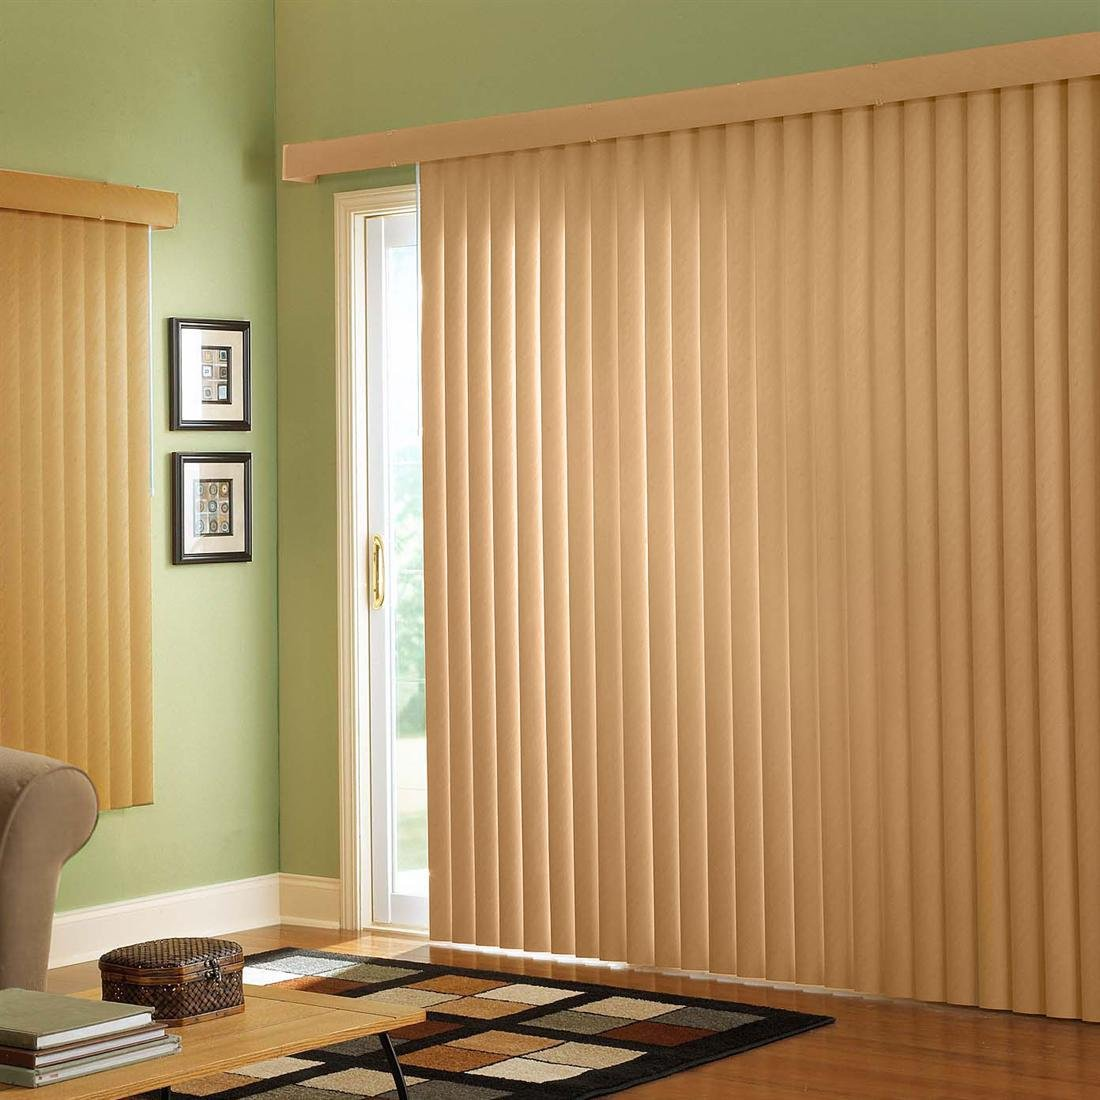 Outstanding Sliding Glass Door Blinds 1100 x 1100 · 129 kB · jpeg